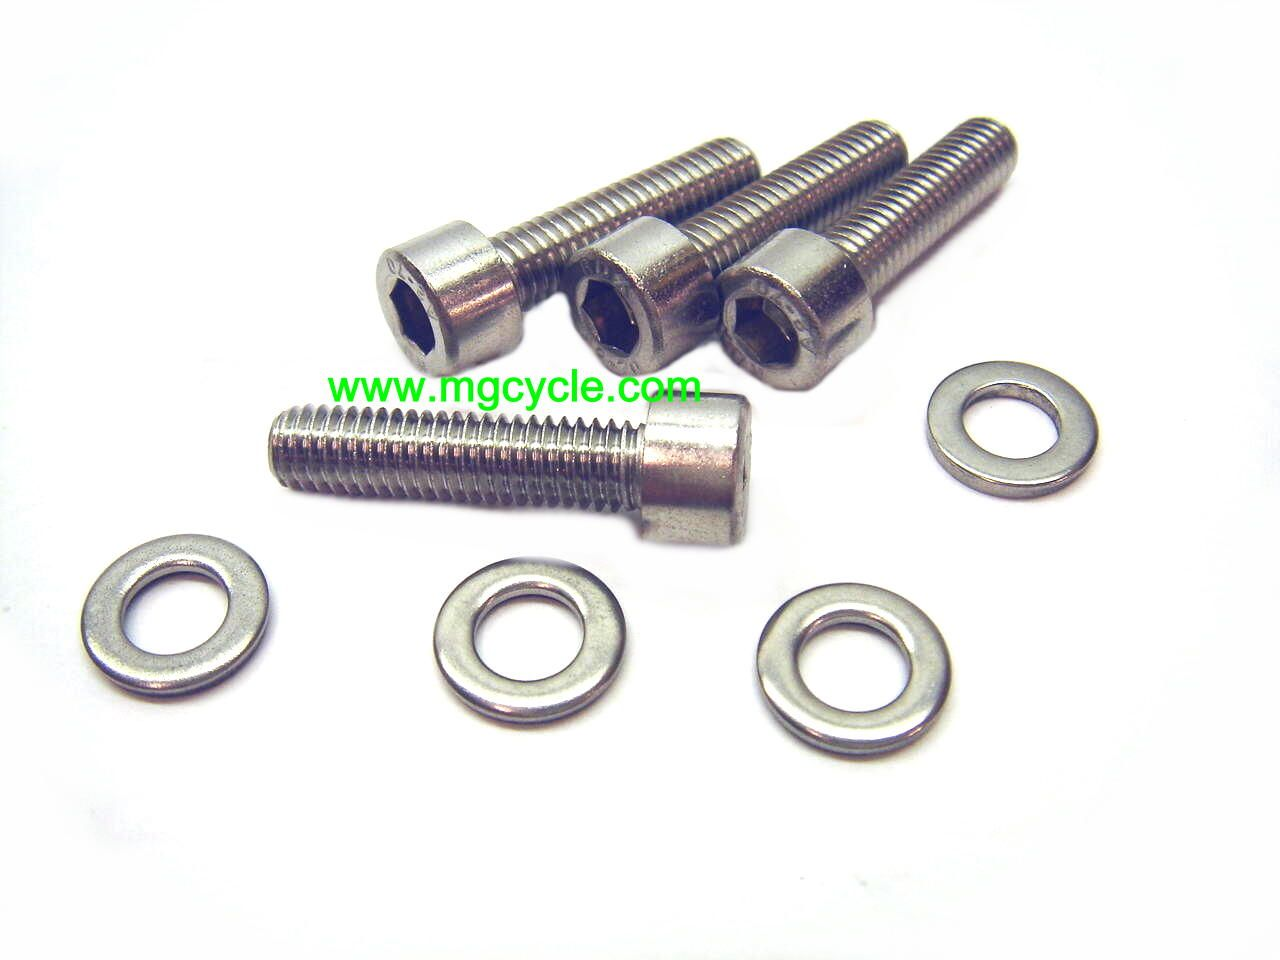 Stainless fastener kit for alternator covers without spacer